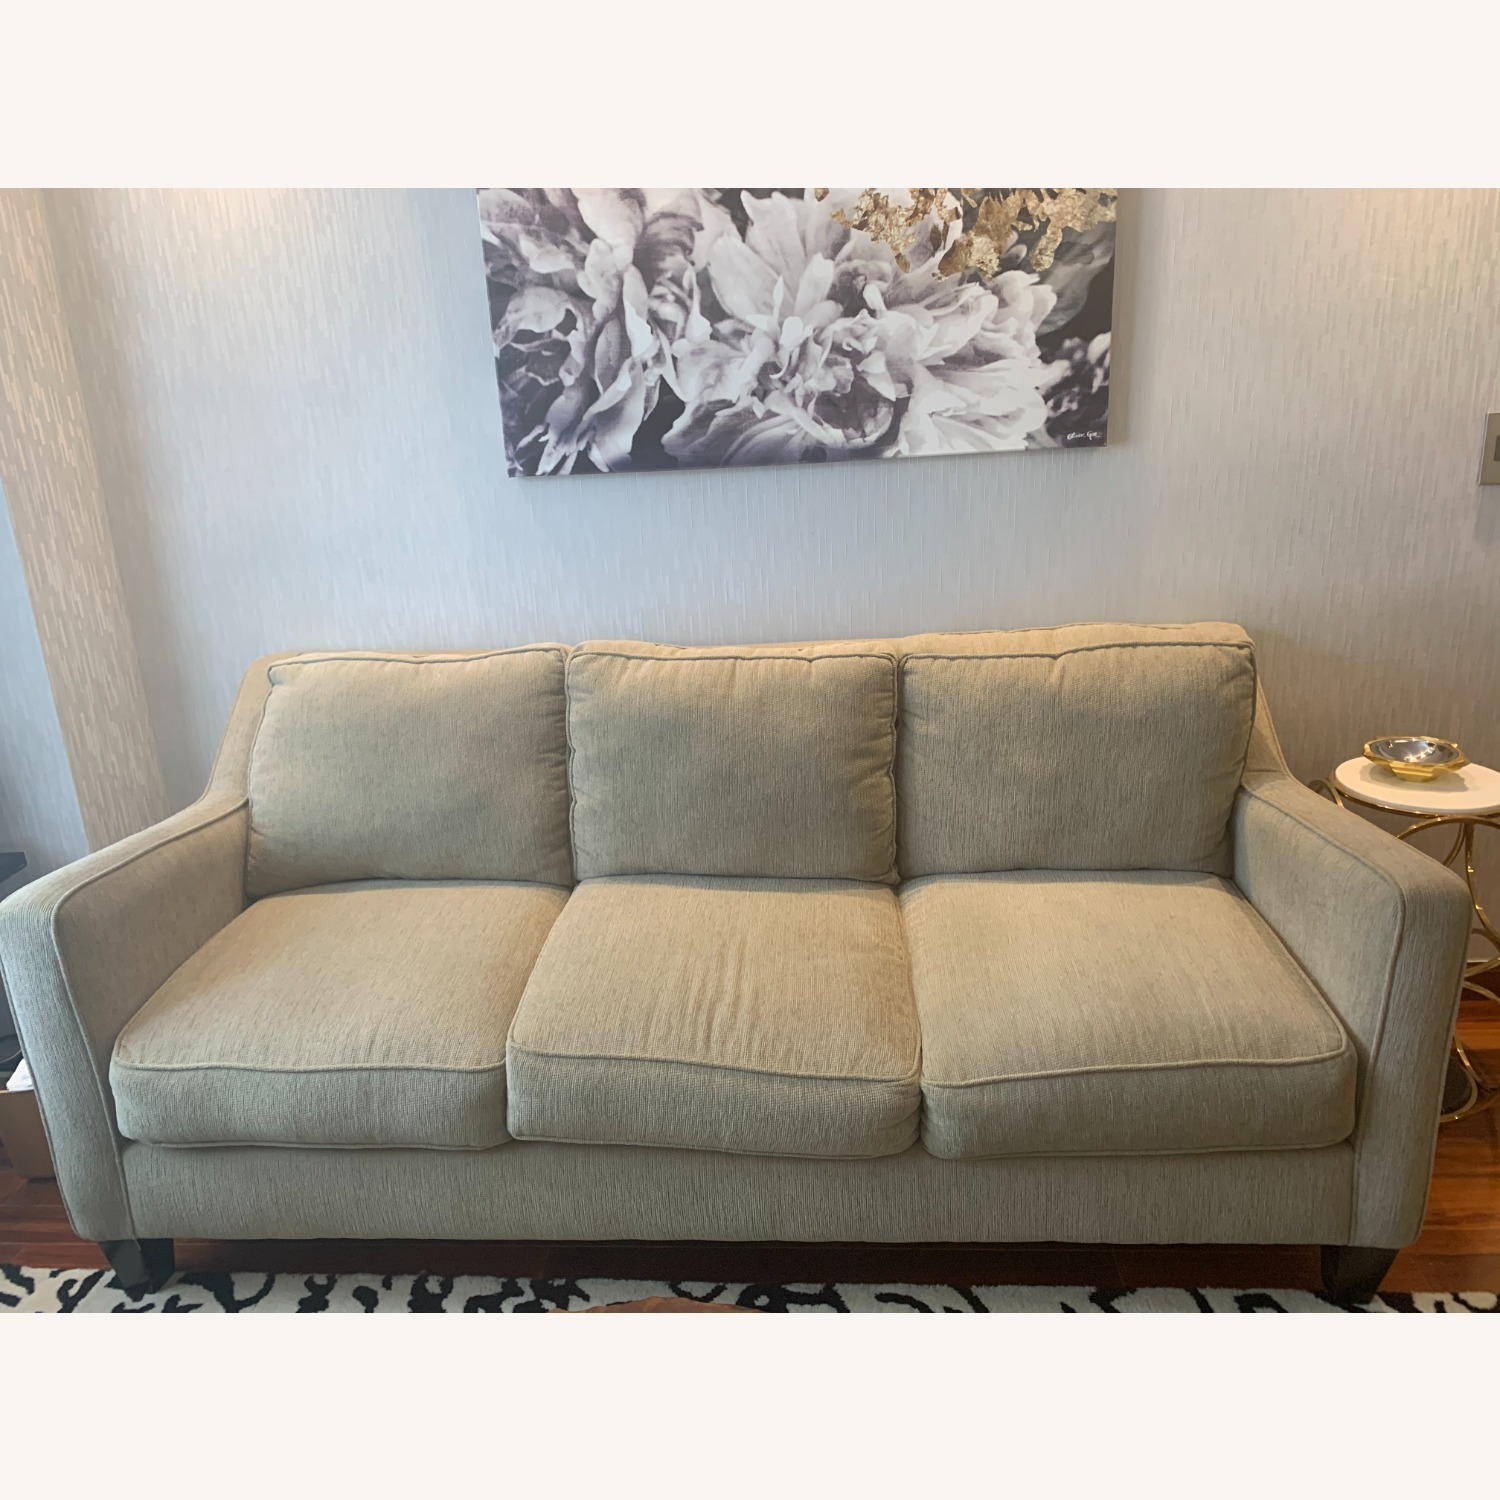 Bloomingdales Exclusive 3 Seater Fabric Sofa - image-1